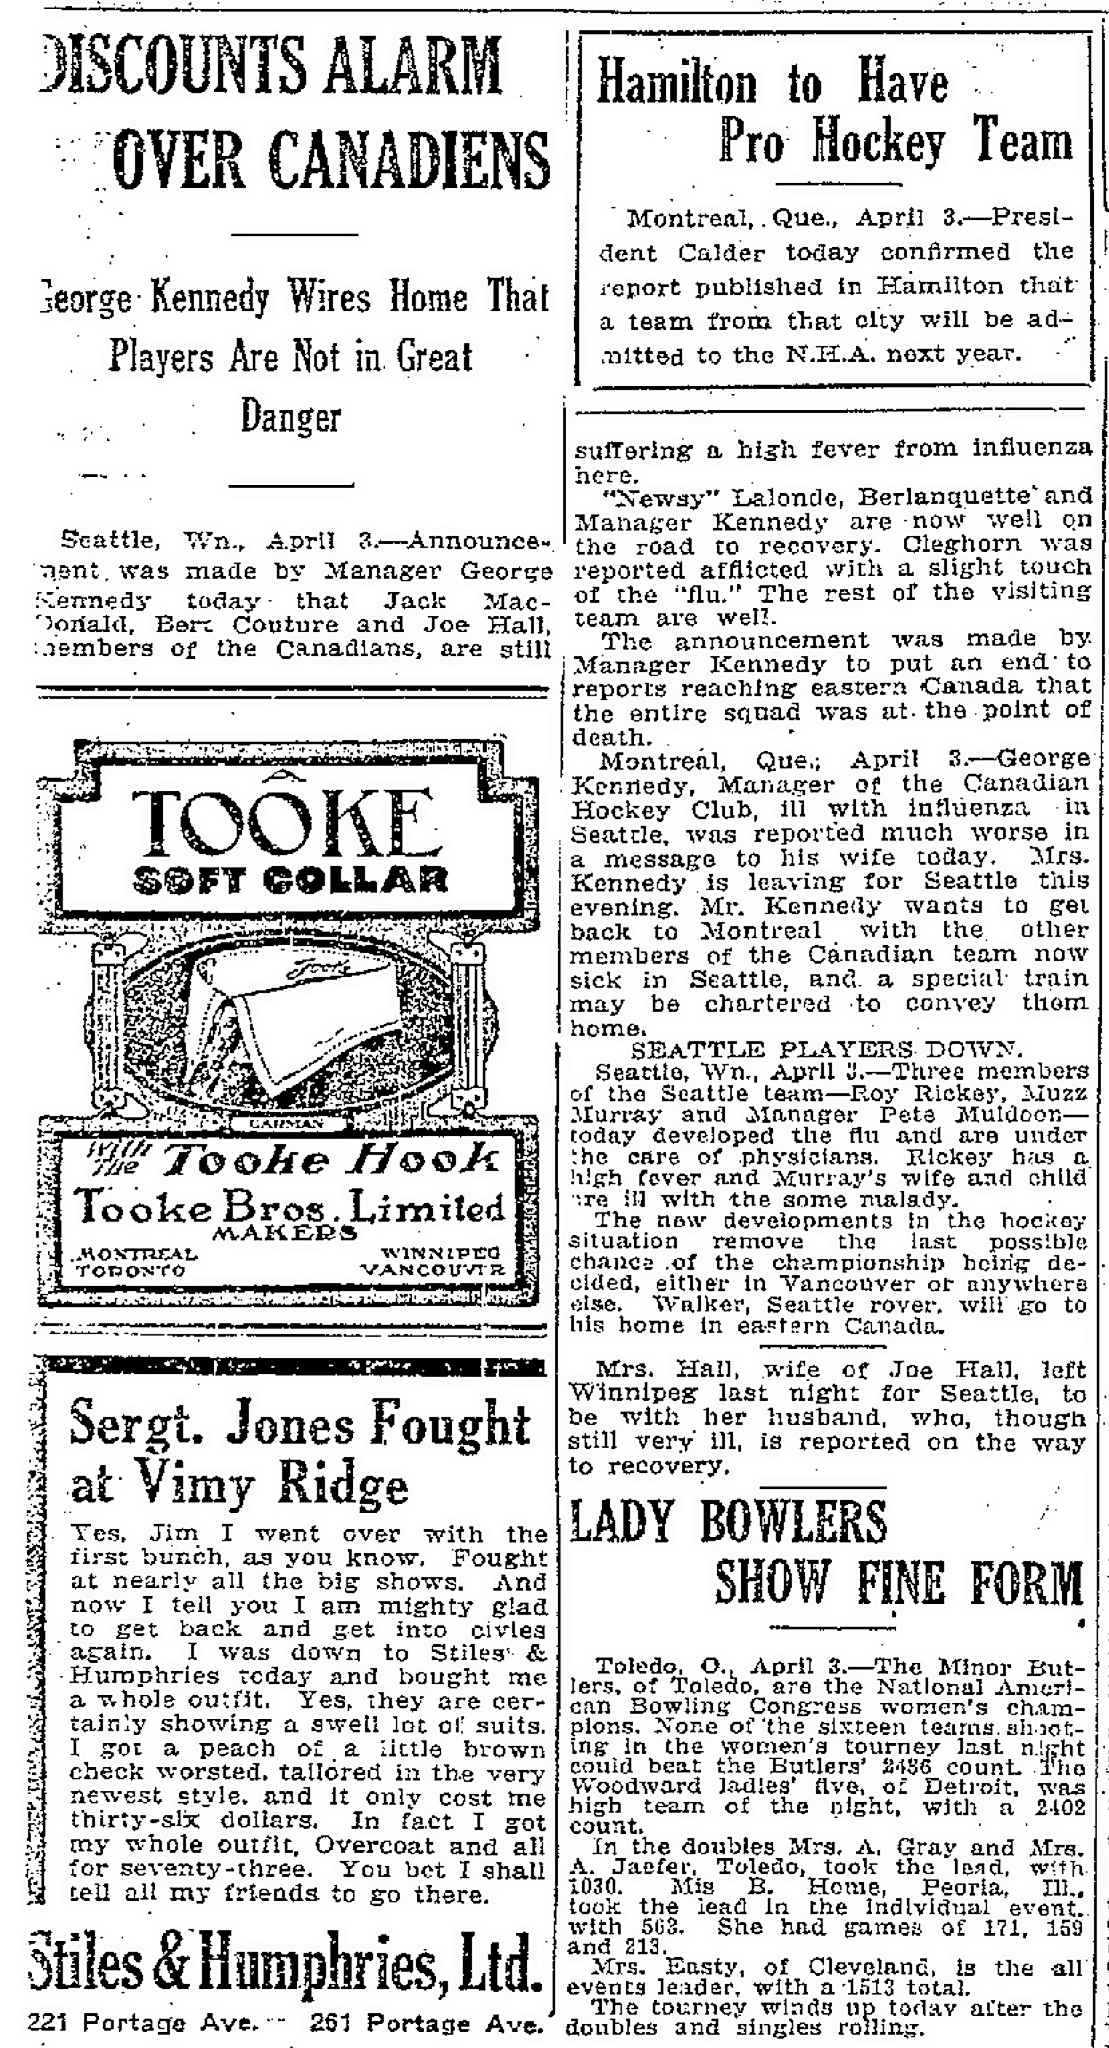 An article published in the Manitoba Free Press on April 4, 1919.